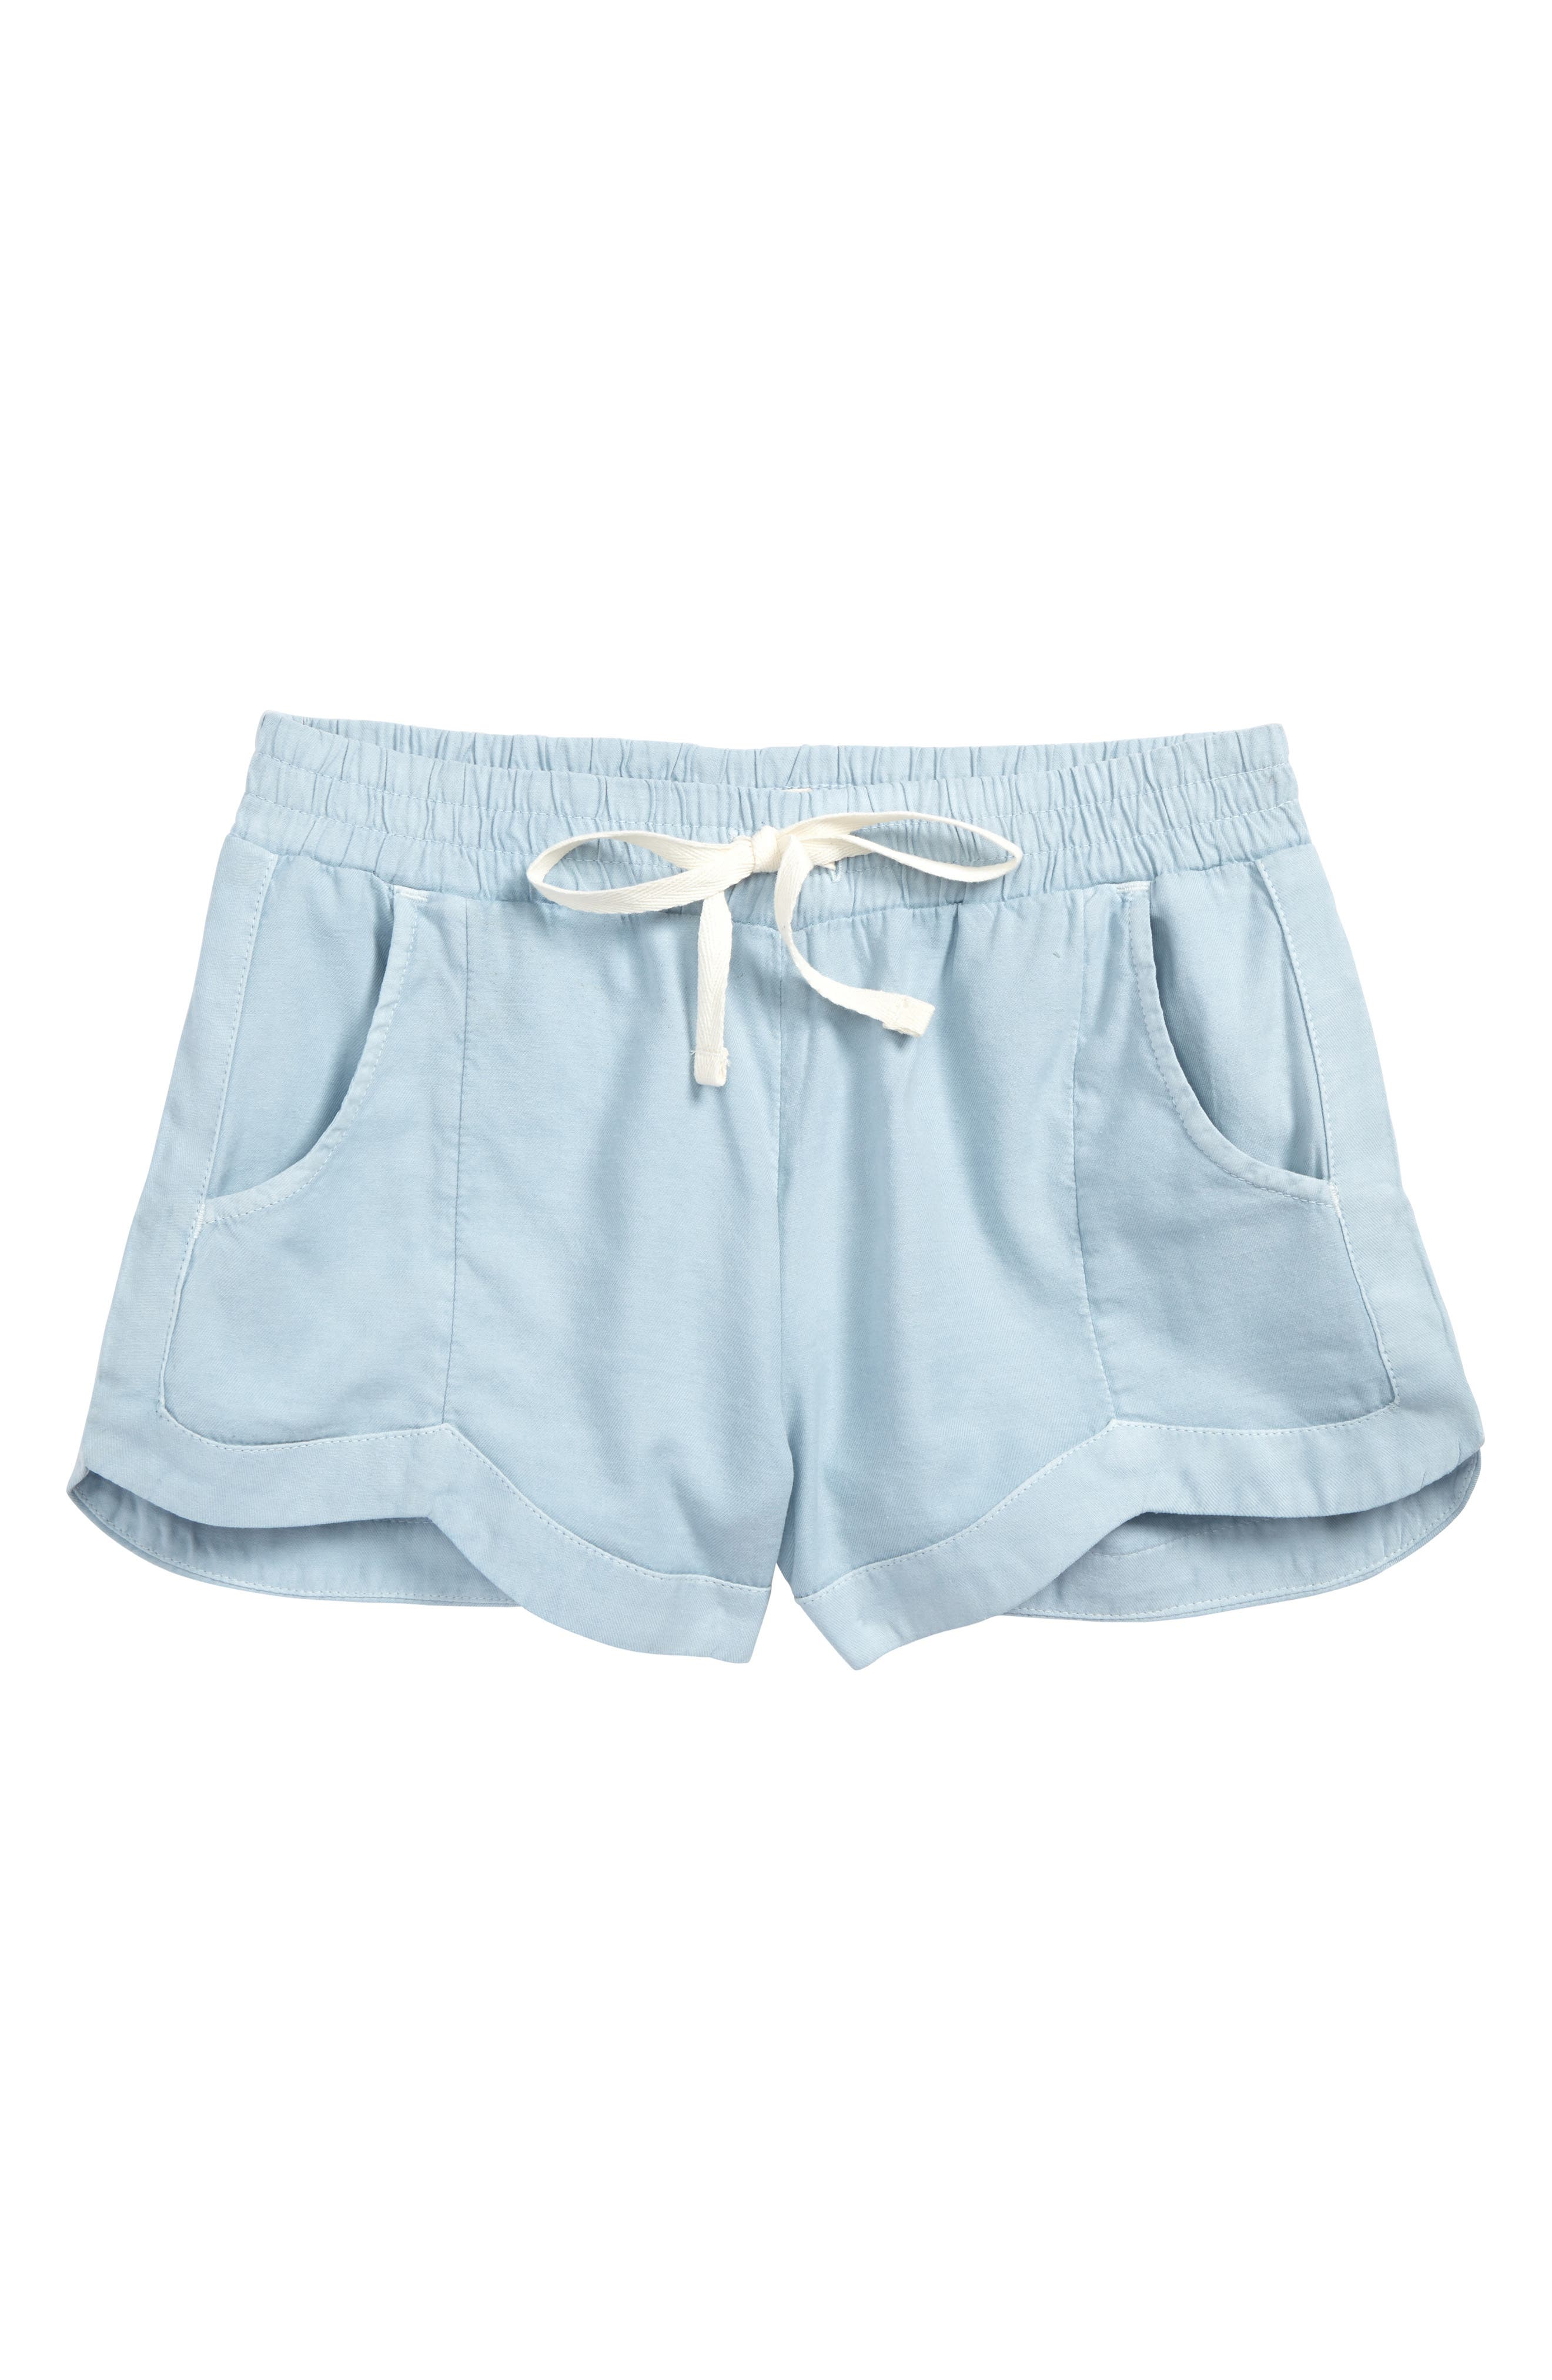 BILLABONG, Made For You Woven Shorts, Main thumbnail 1, color, CHAMBRAY